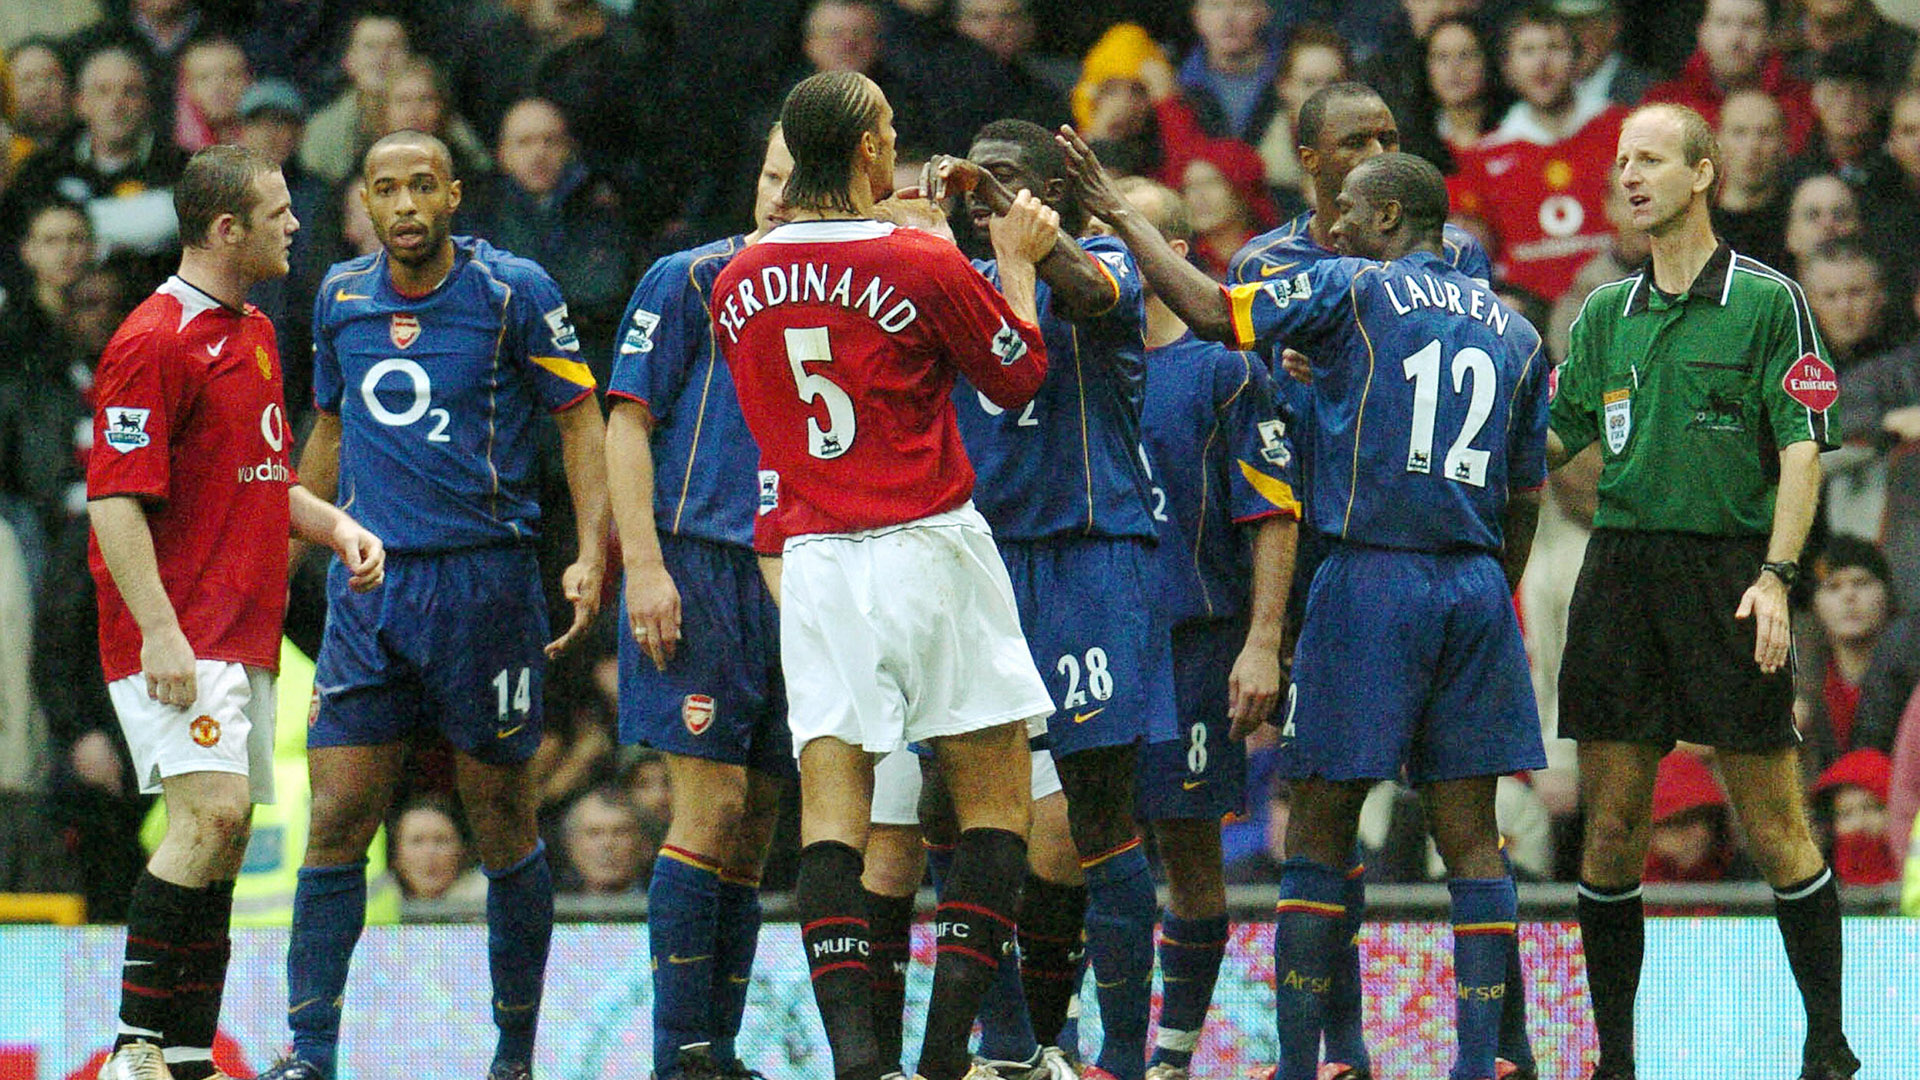 Manchester United Arsenal 2004